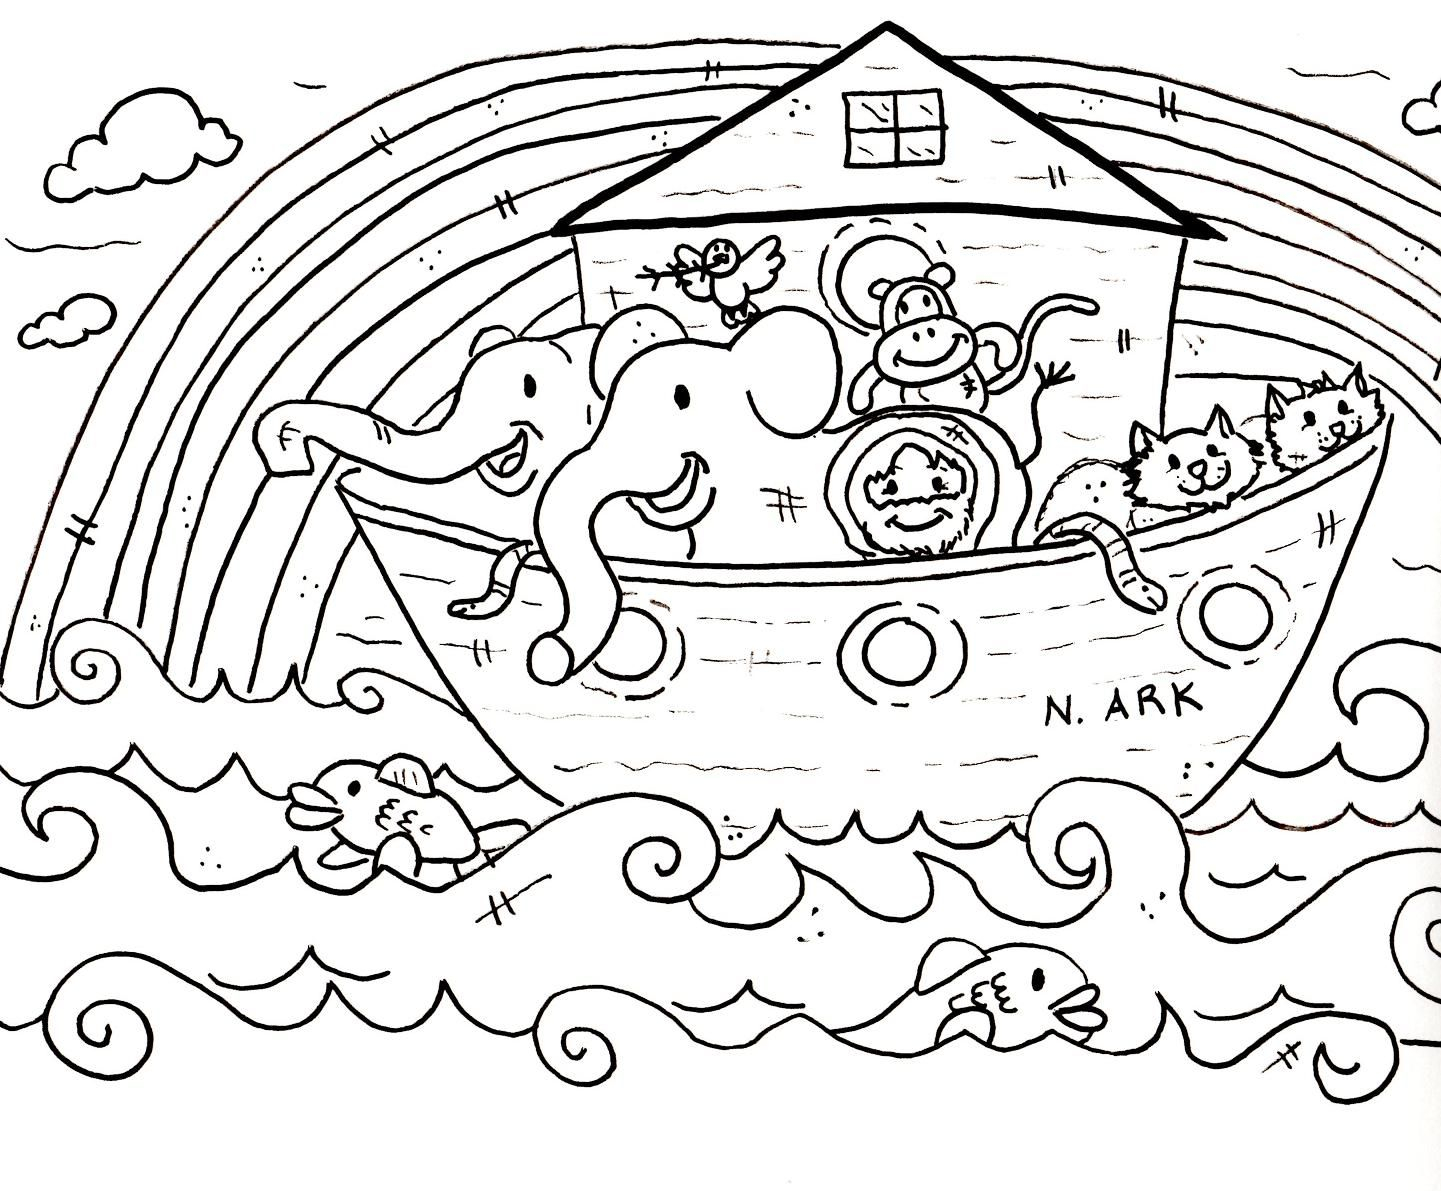 Children Coloring Pages for Church Printable Of 28 Sunday School Coloring Pages for Preschoolers Jesus Loves Gallery